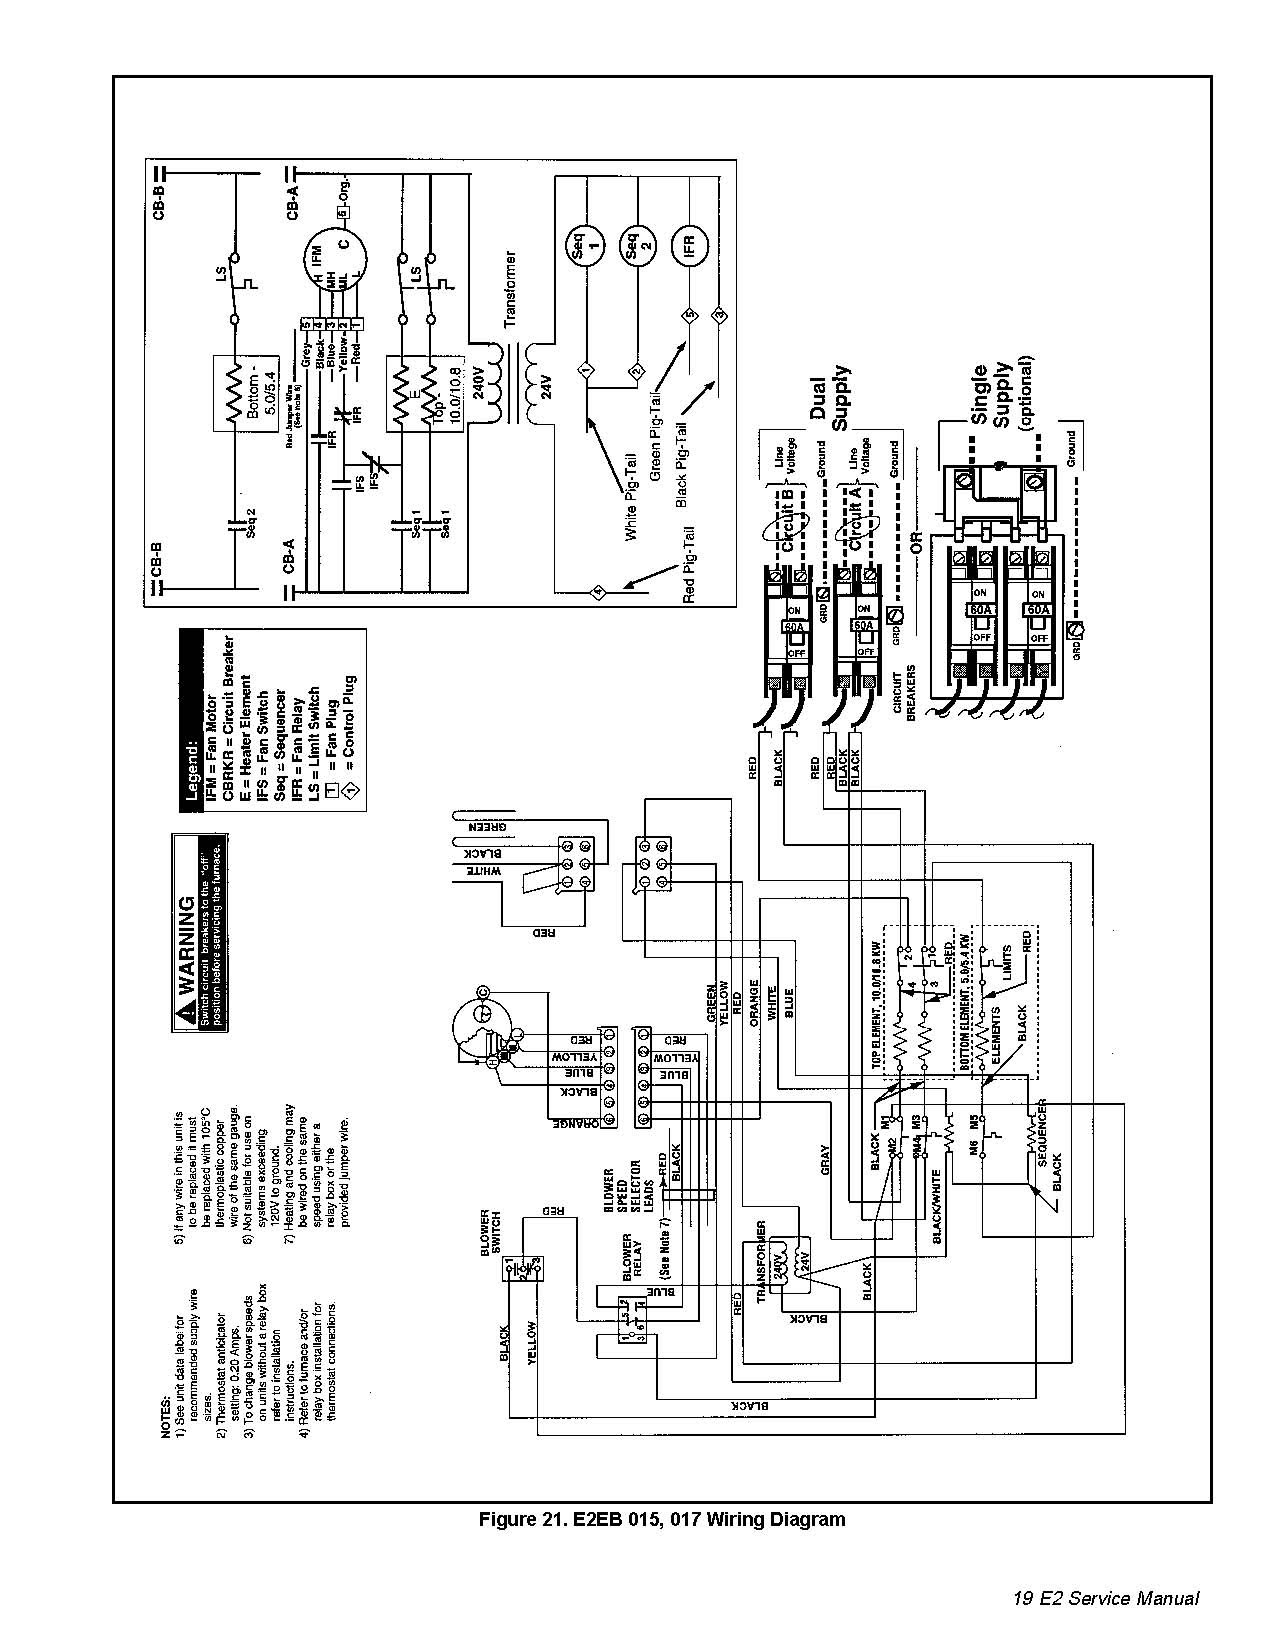 Nordyne Furnace Circuit Board Wiring Diagram